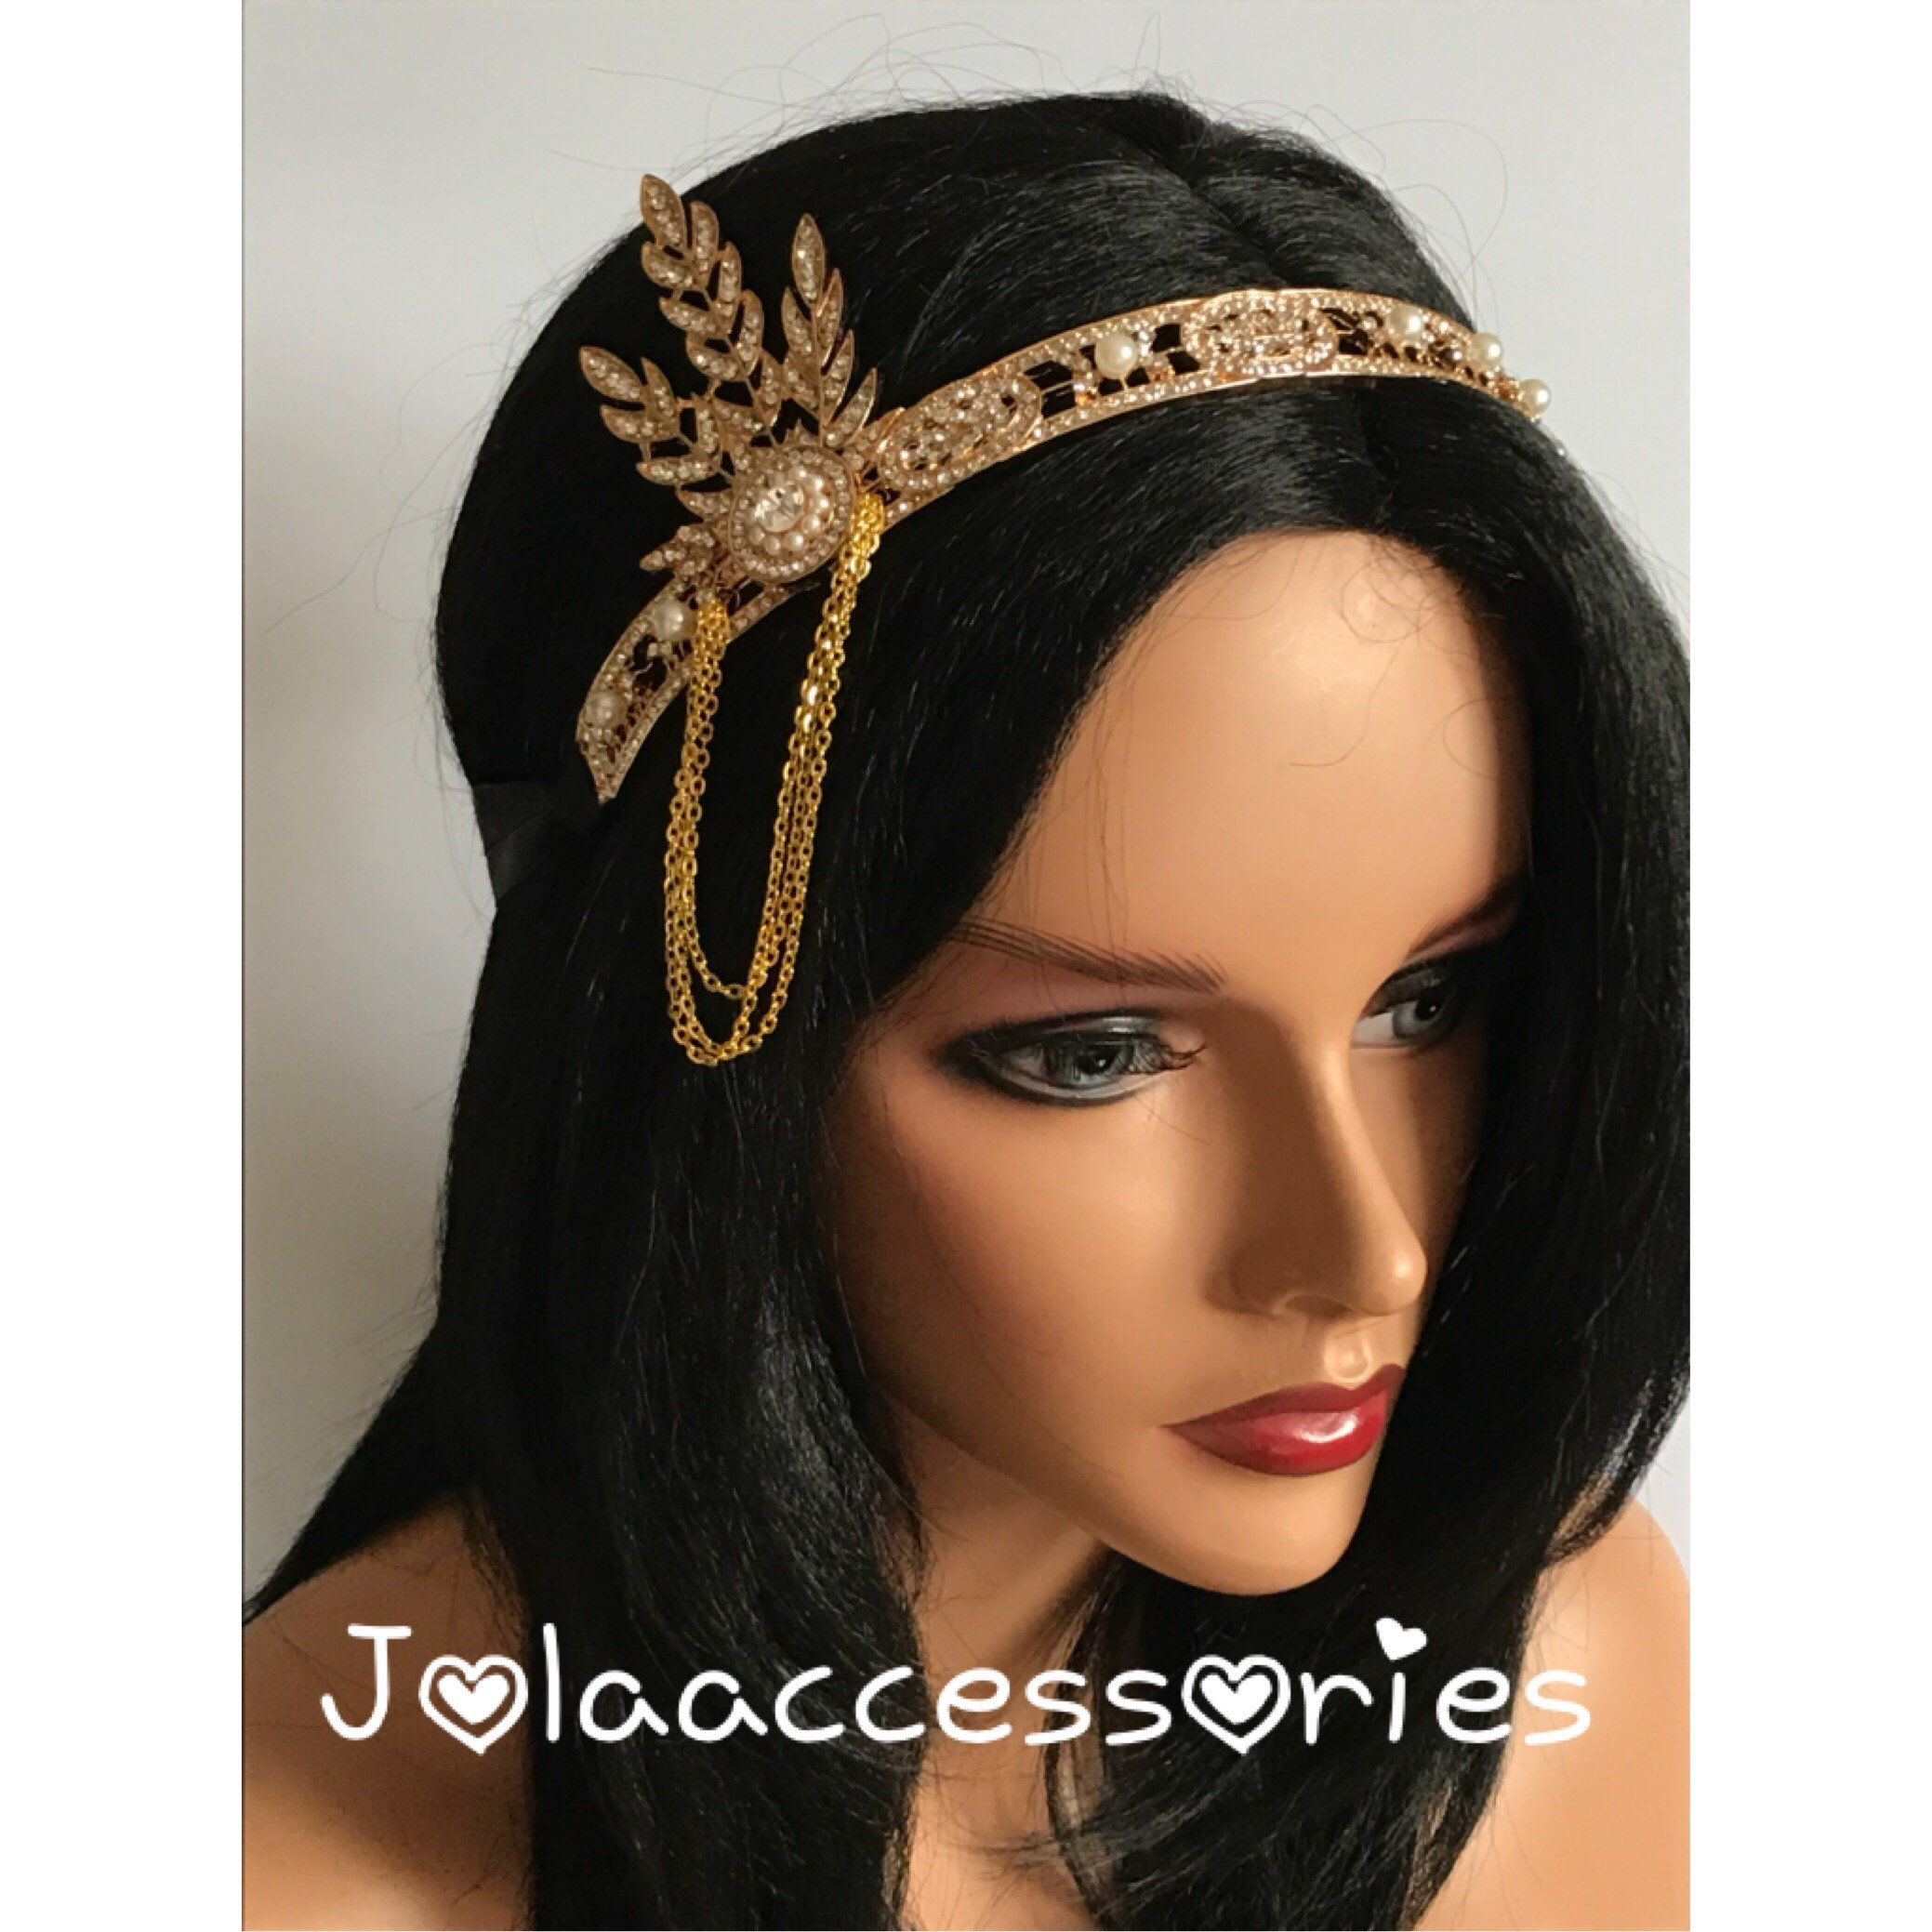 Gold Great Gatsby 1920s headband Tiara Art Deco headpiece wedding bridal headband Great Gatsby flapper hair accessories wedding bridesmaid #flapperhair